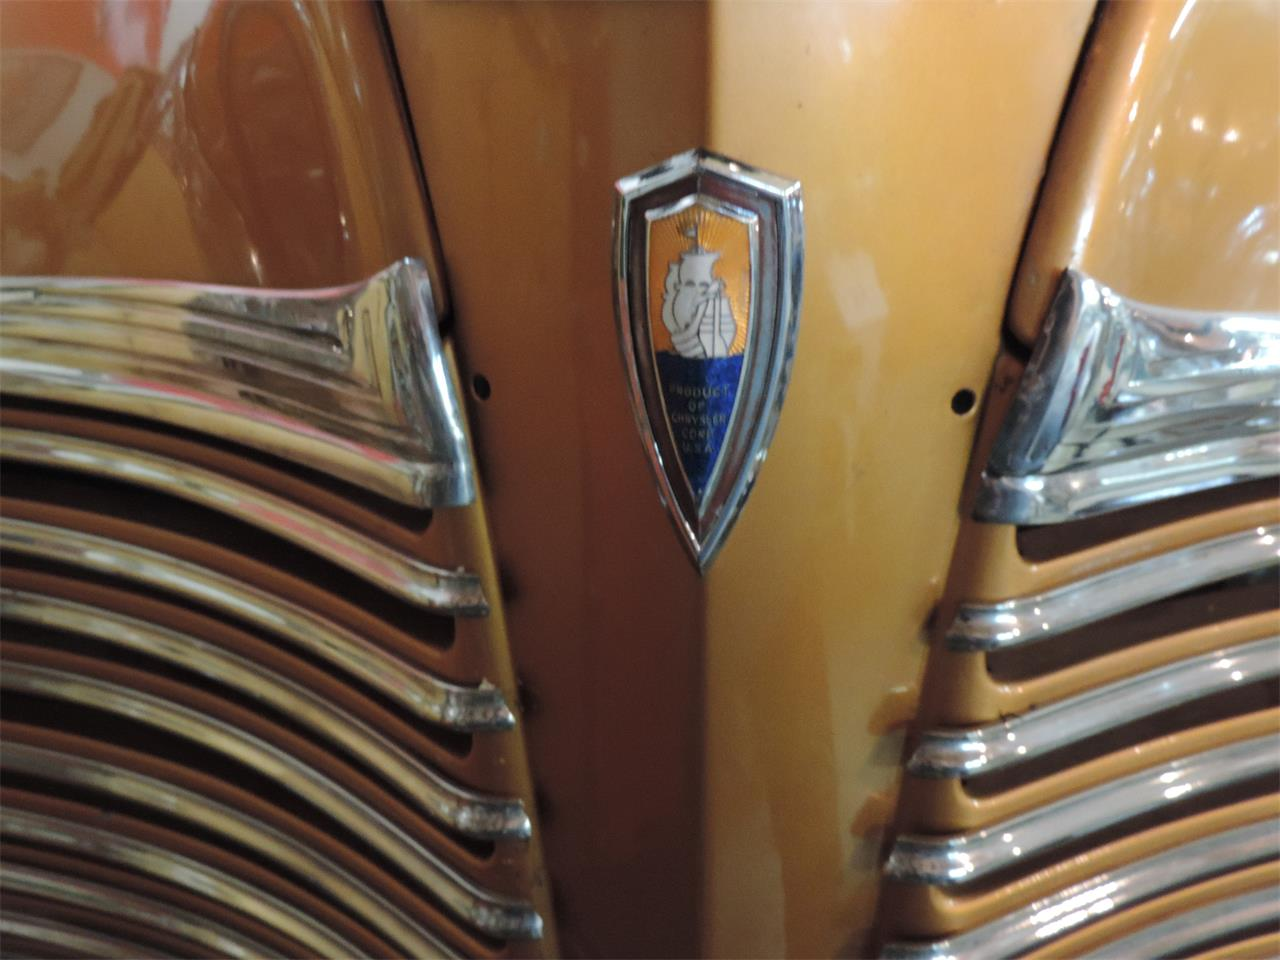 1941 Plymouth Business Coupe for sale in Spokane, WA – photo 19